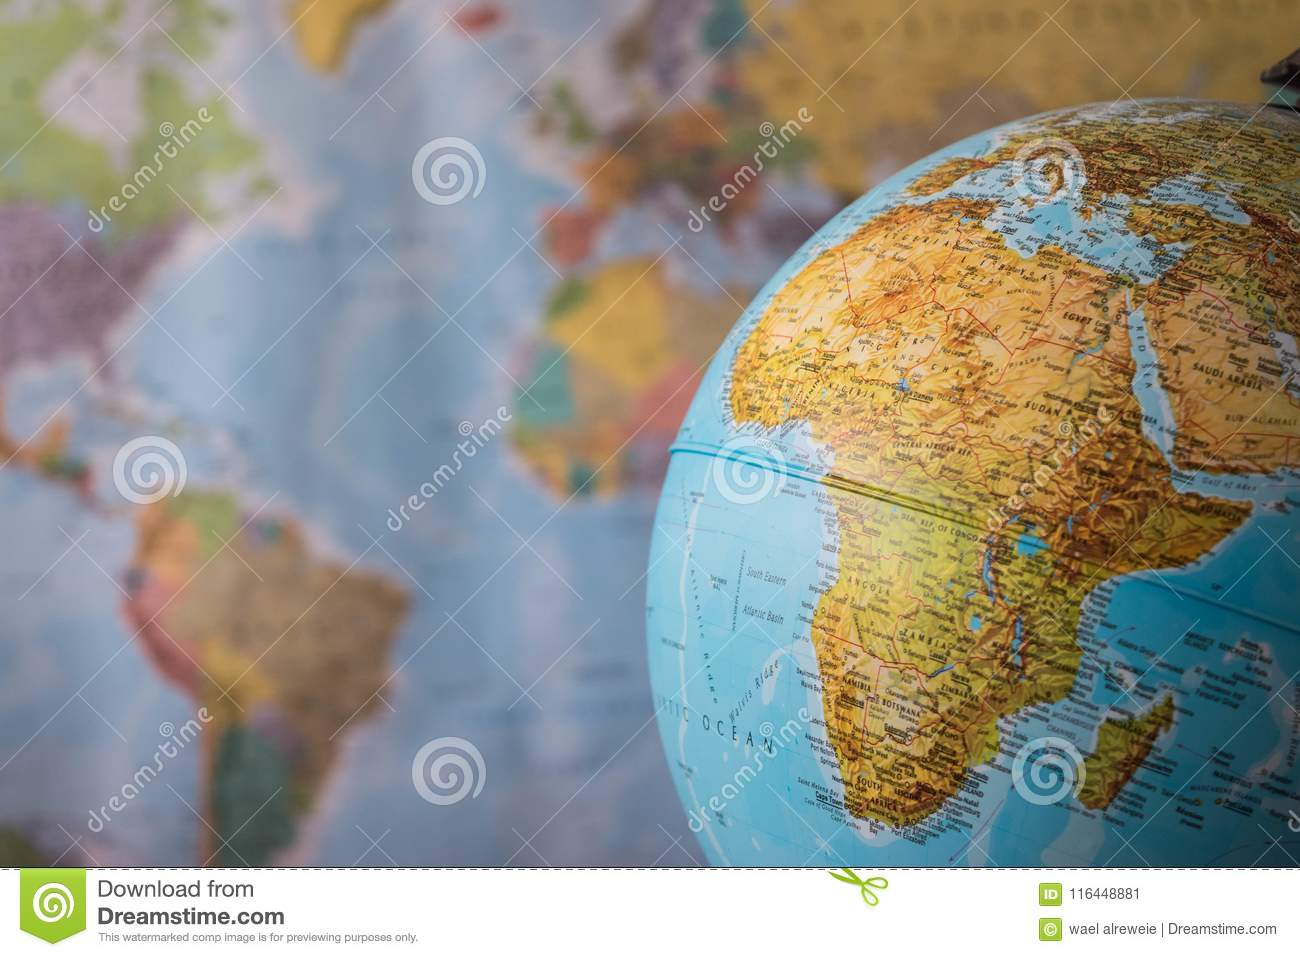 Africa Map Background.Africa And Middle East Map On A Globe With Earth Map In The